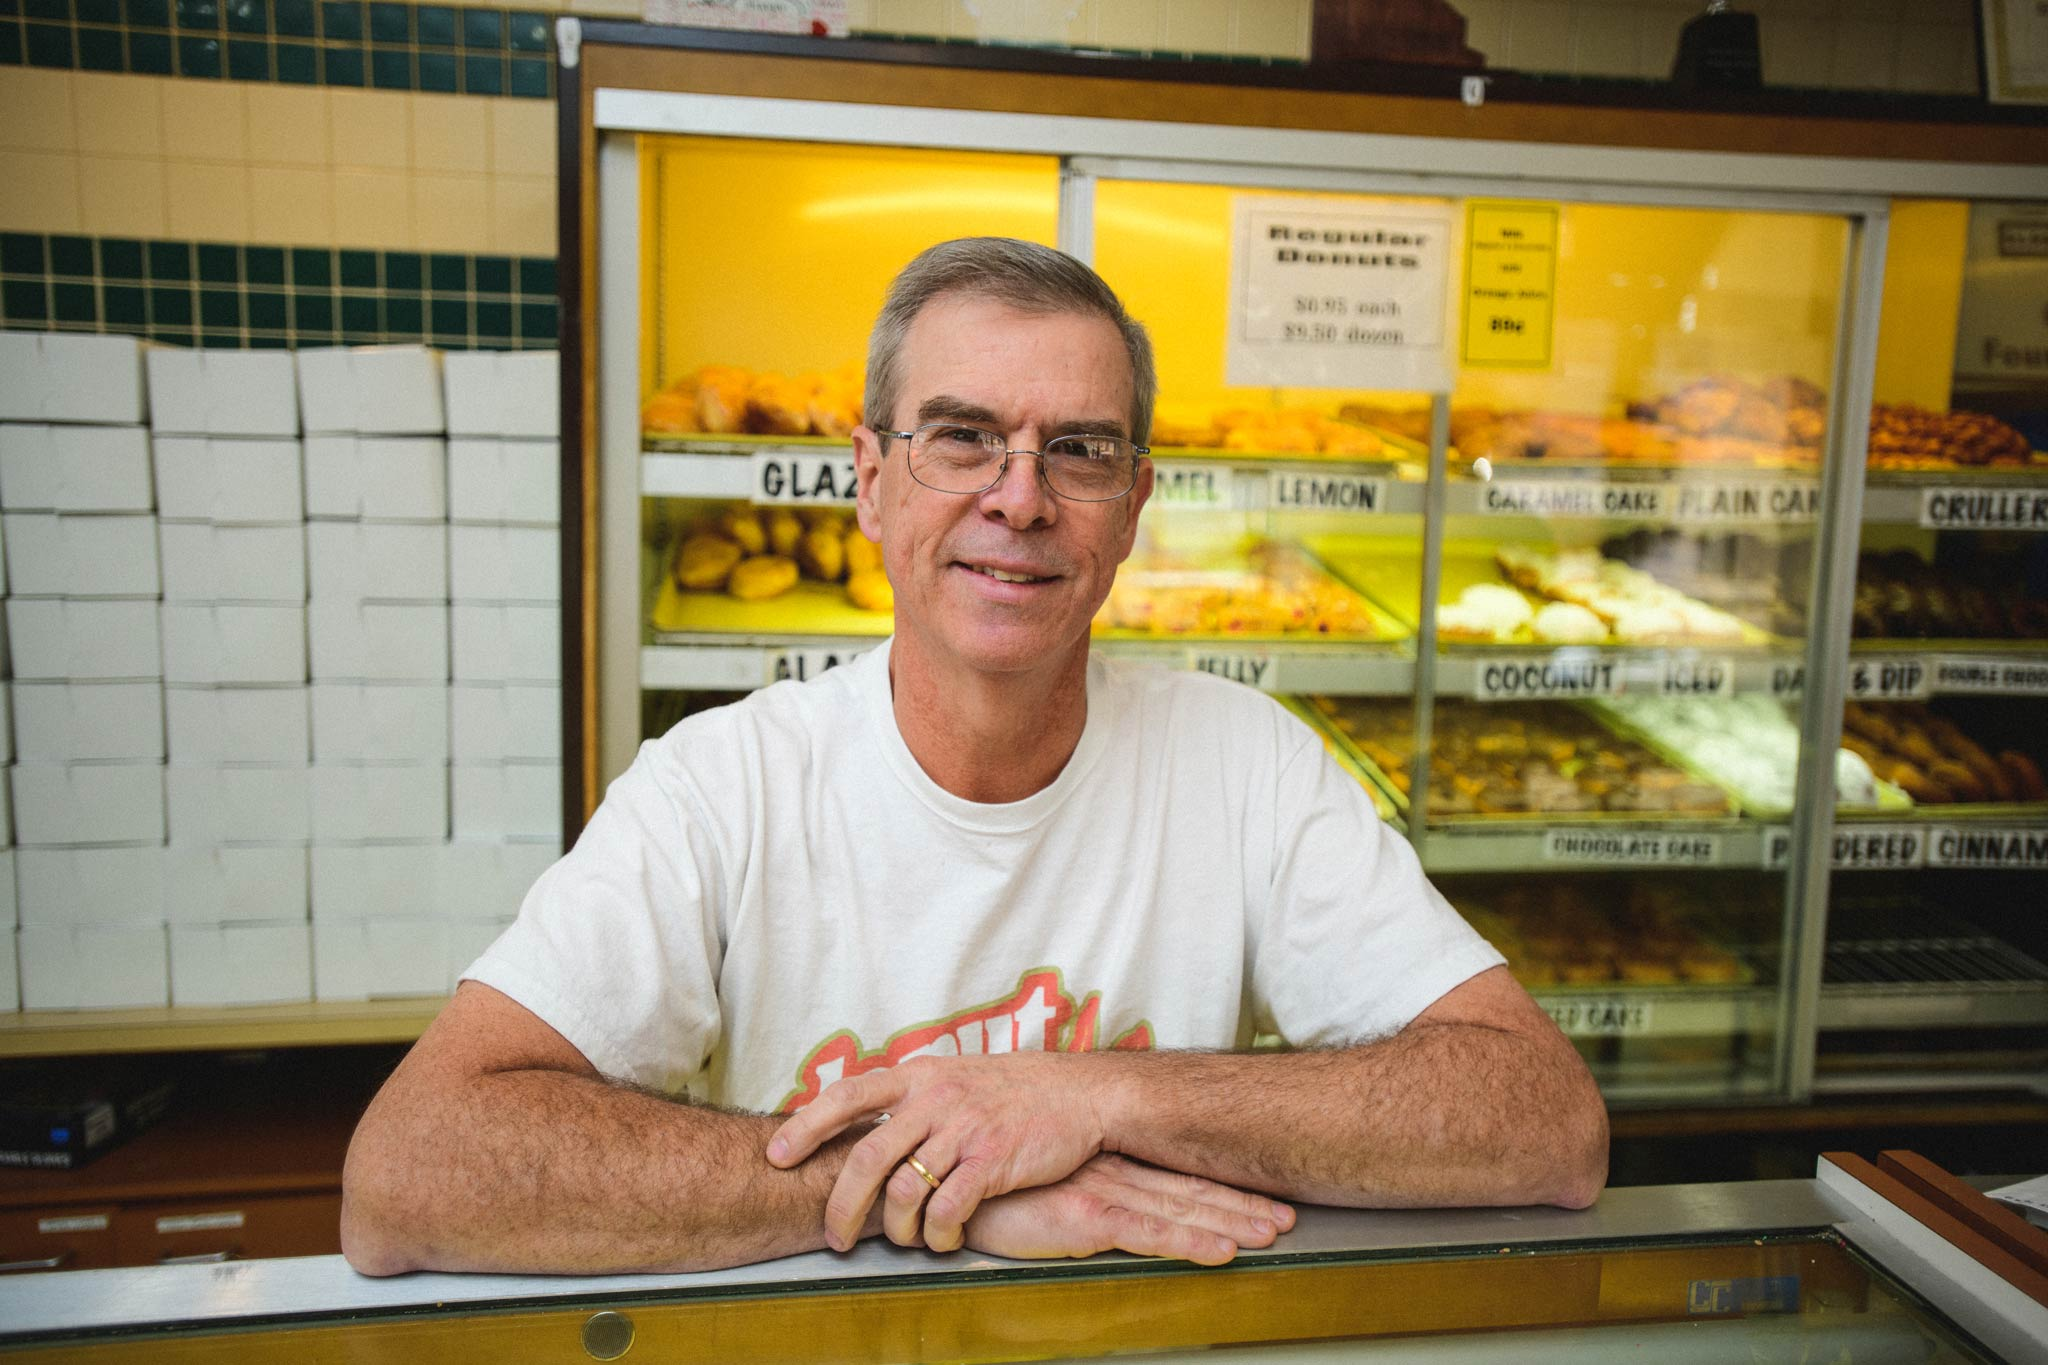 Fred Wohlstein leans against a counter at the doughnut shop and smiles.